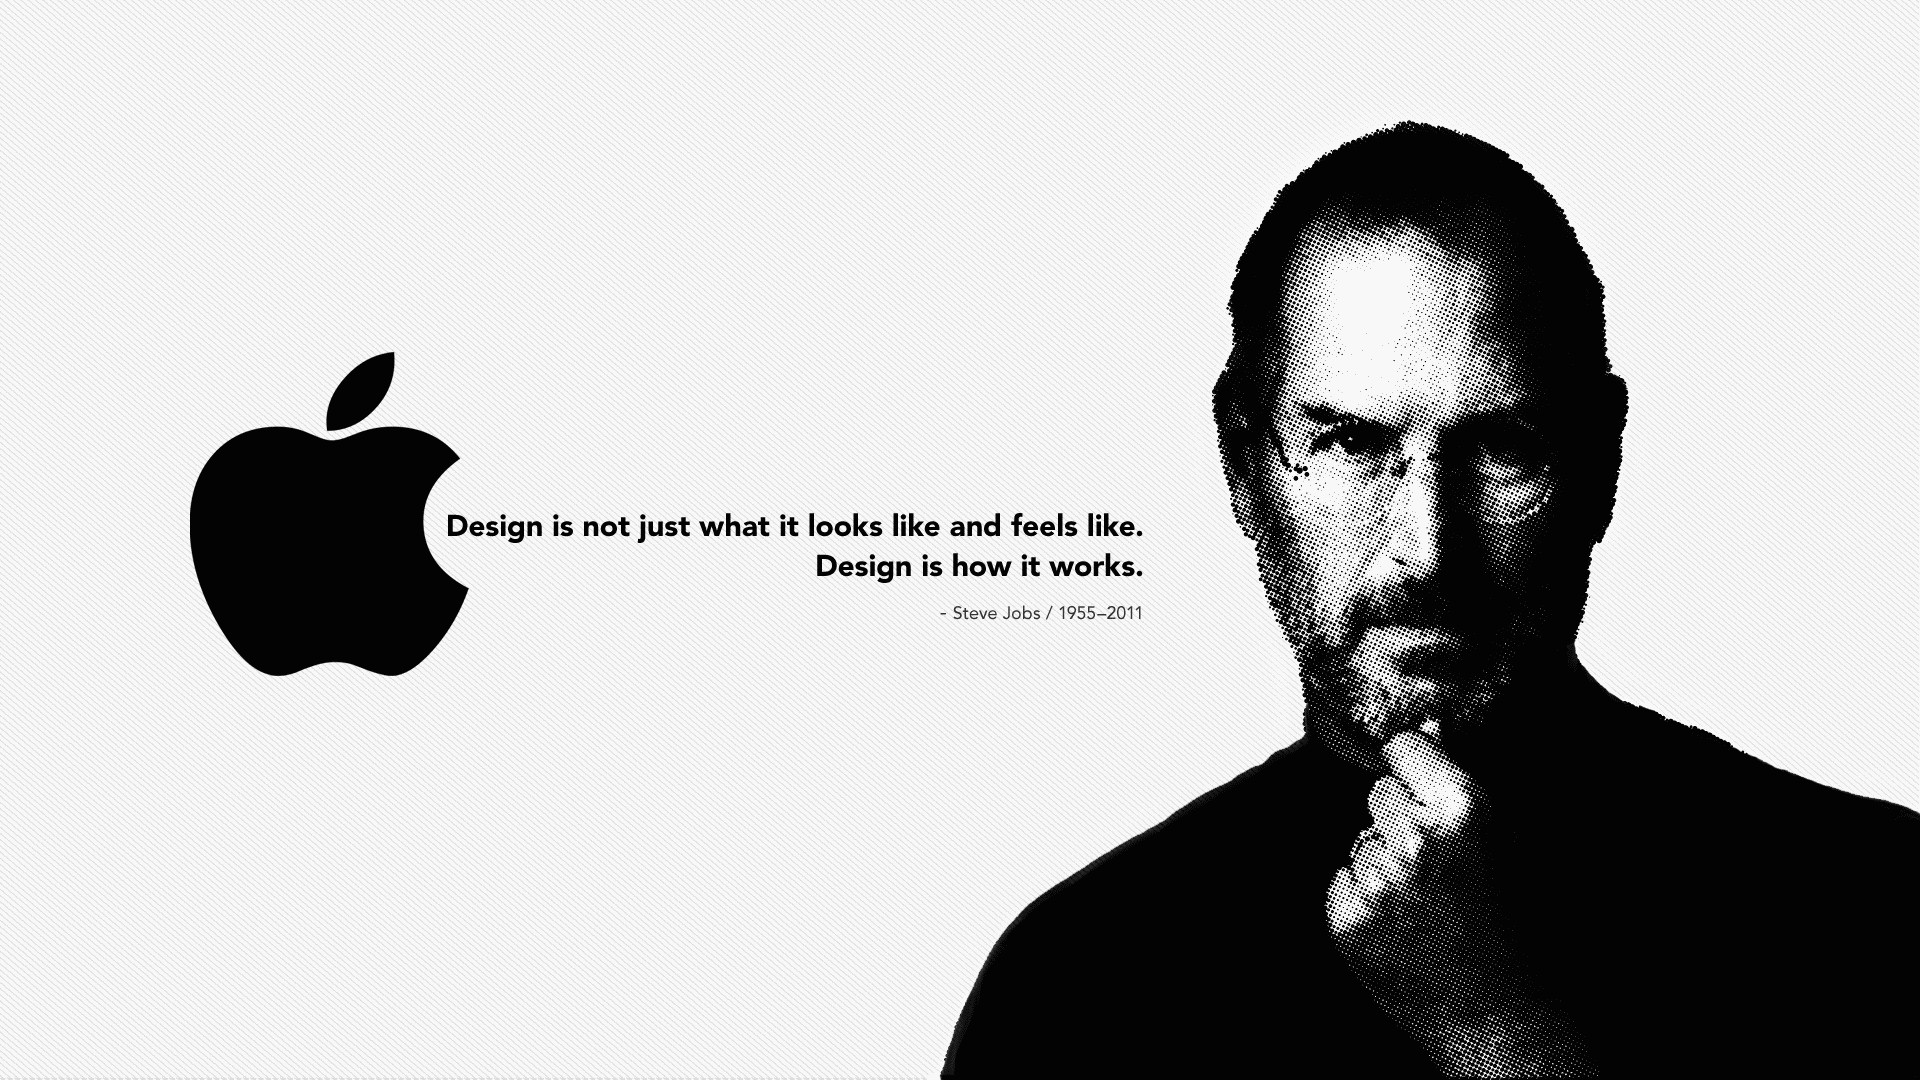 Quotes On Innovation 25 Motivational Steve Jobs Quotes About Innovation Success And Life